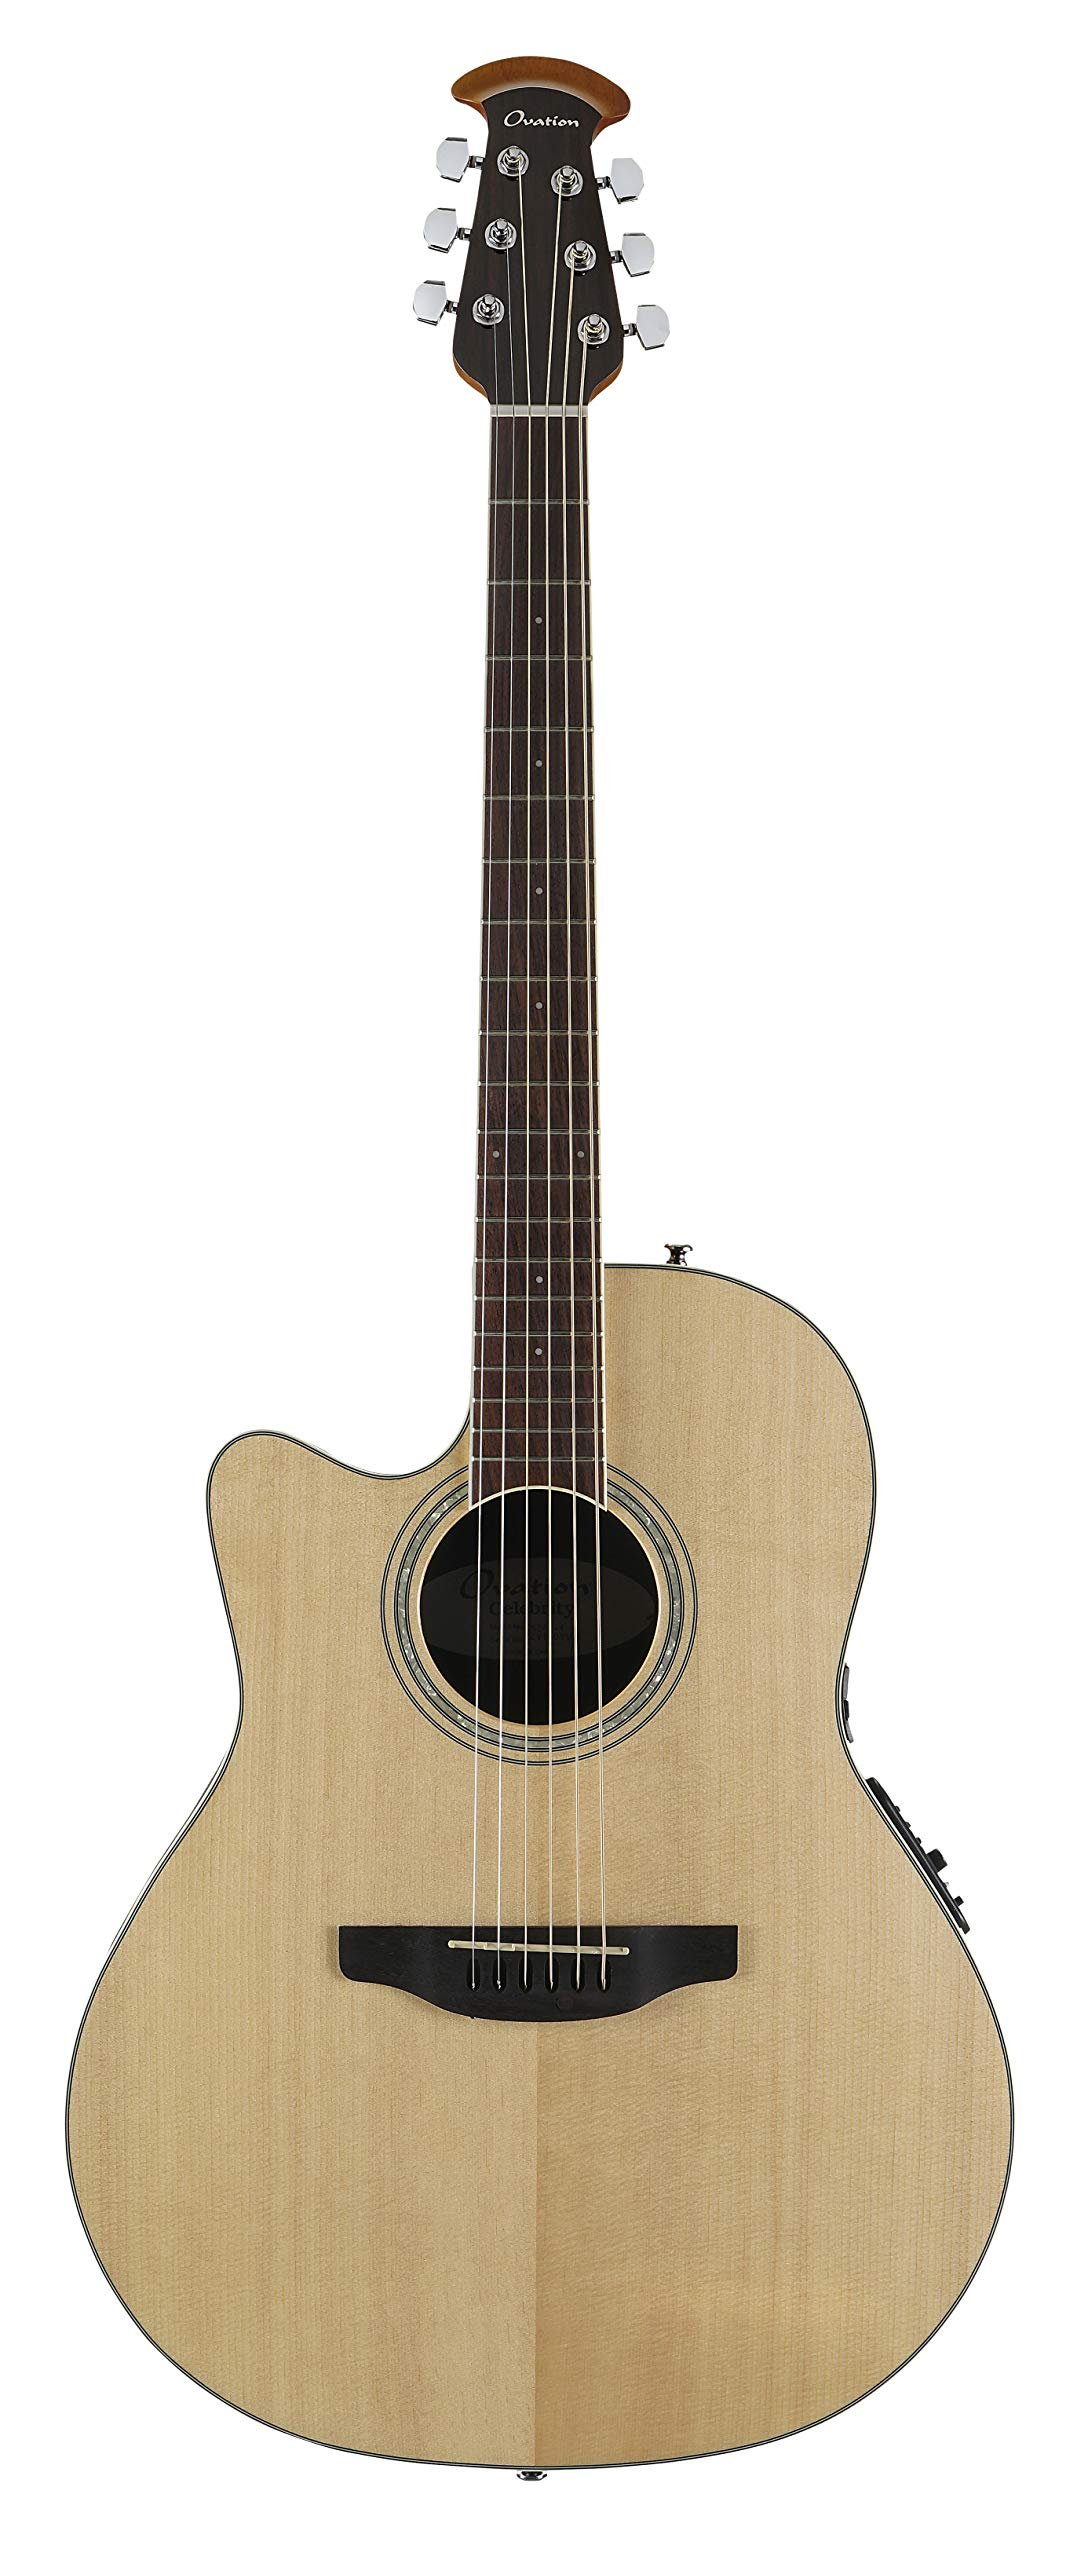 Ovation Celebrity Collection 6 String Acoustic-Electric Guitar, Left, Natural, Mid Depth Body (CS24L-4) by Ovation